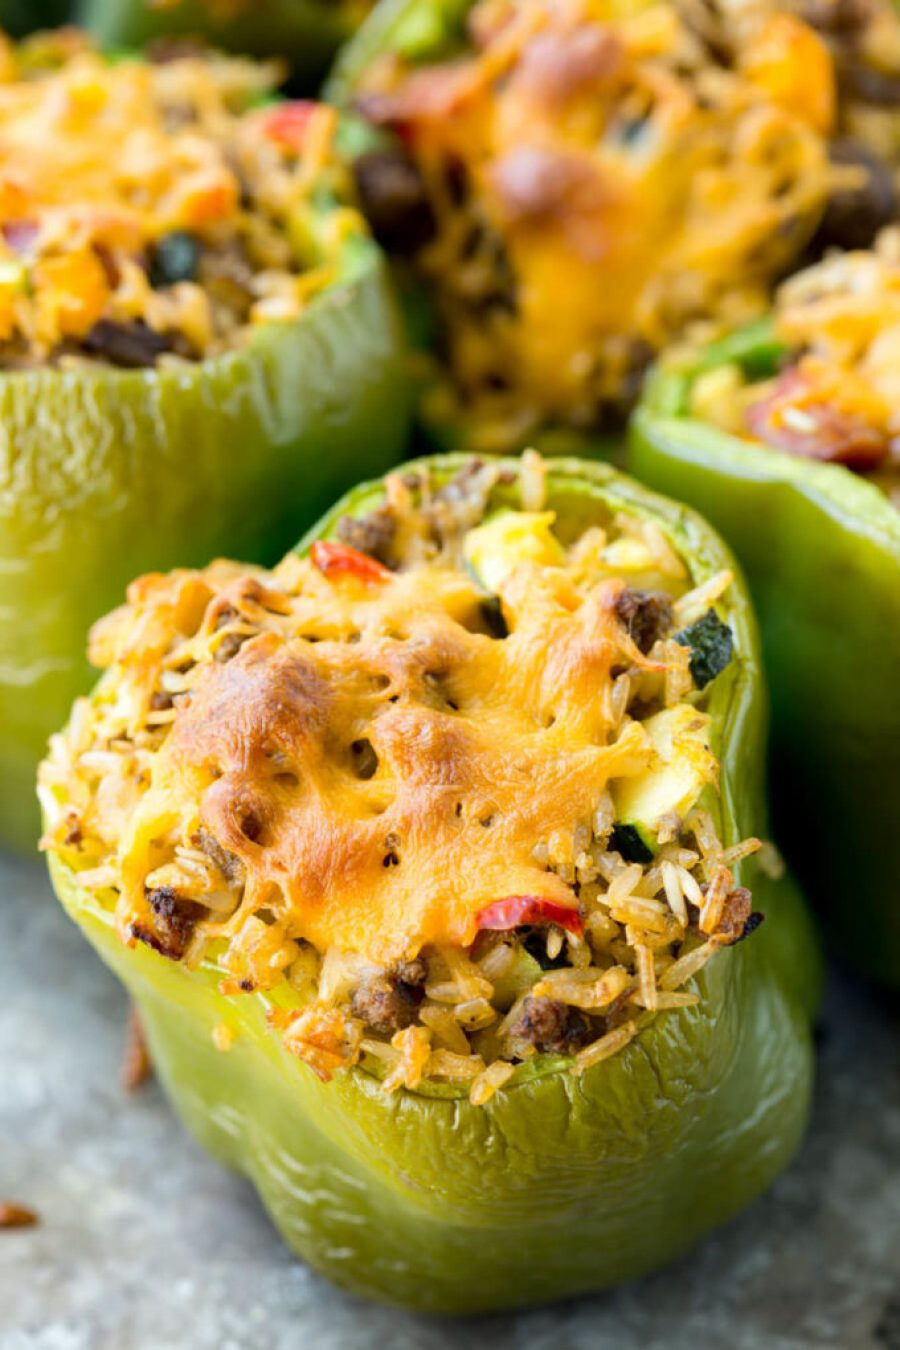 A green bell pepper stuffed with rice, sausage and veggies topped with crisp cheese